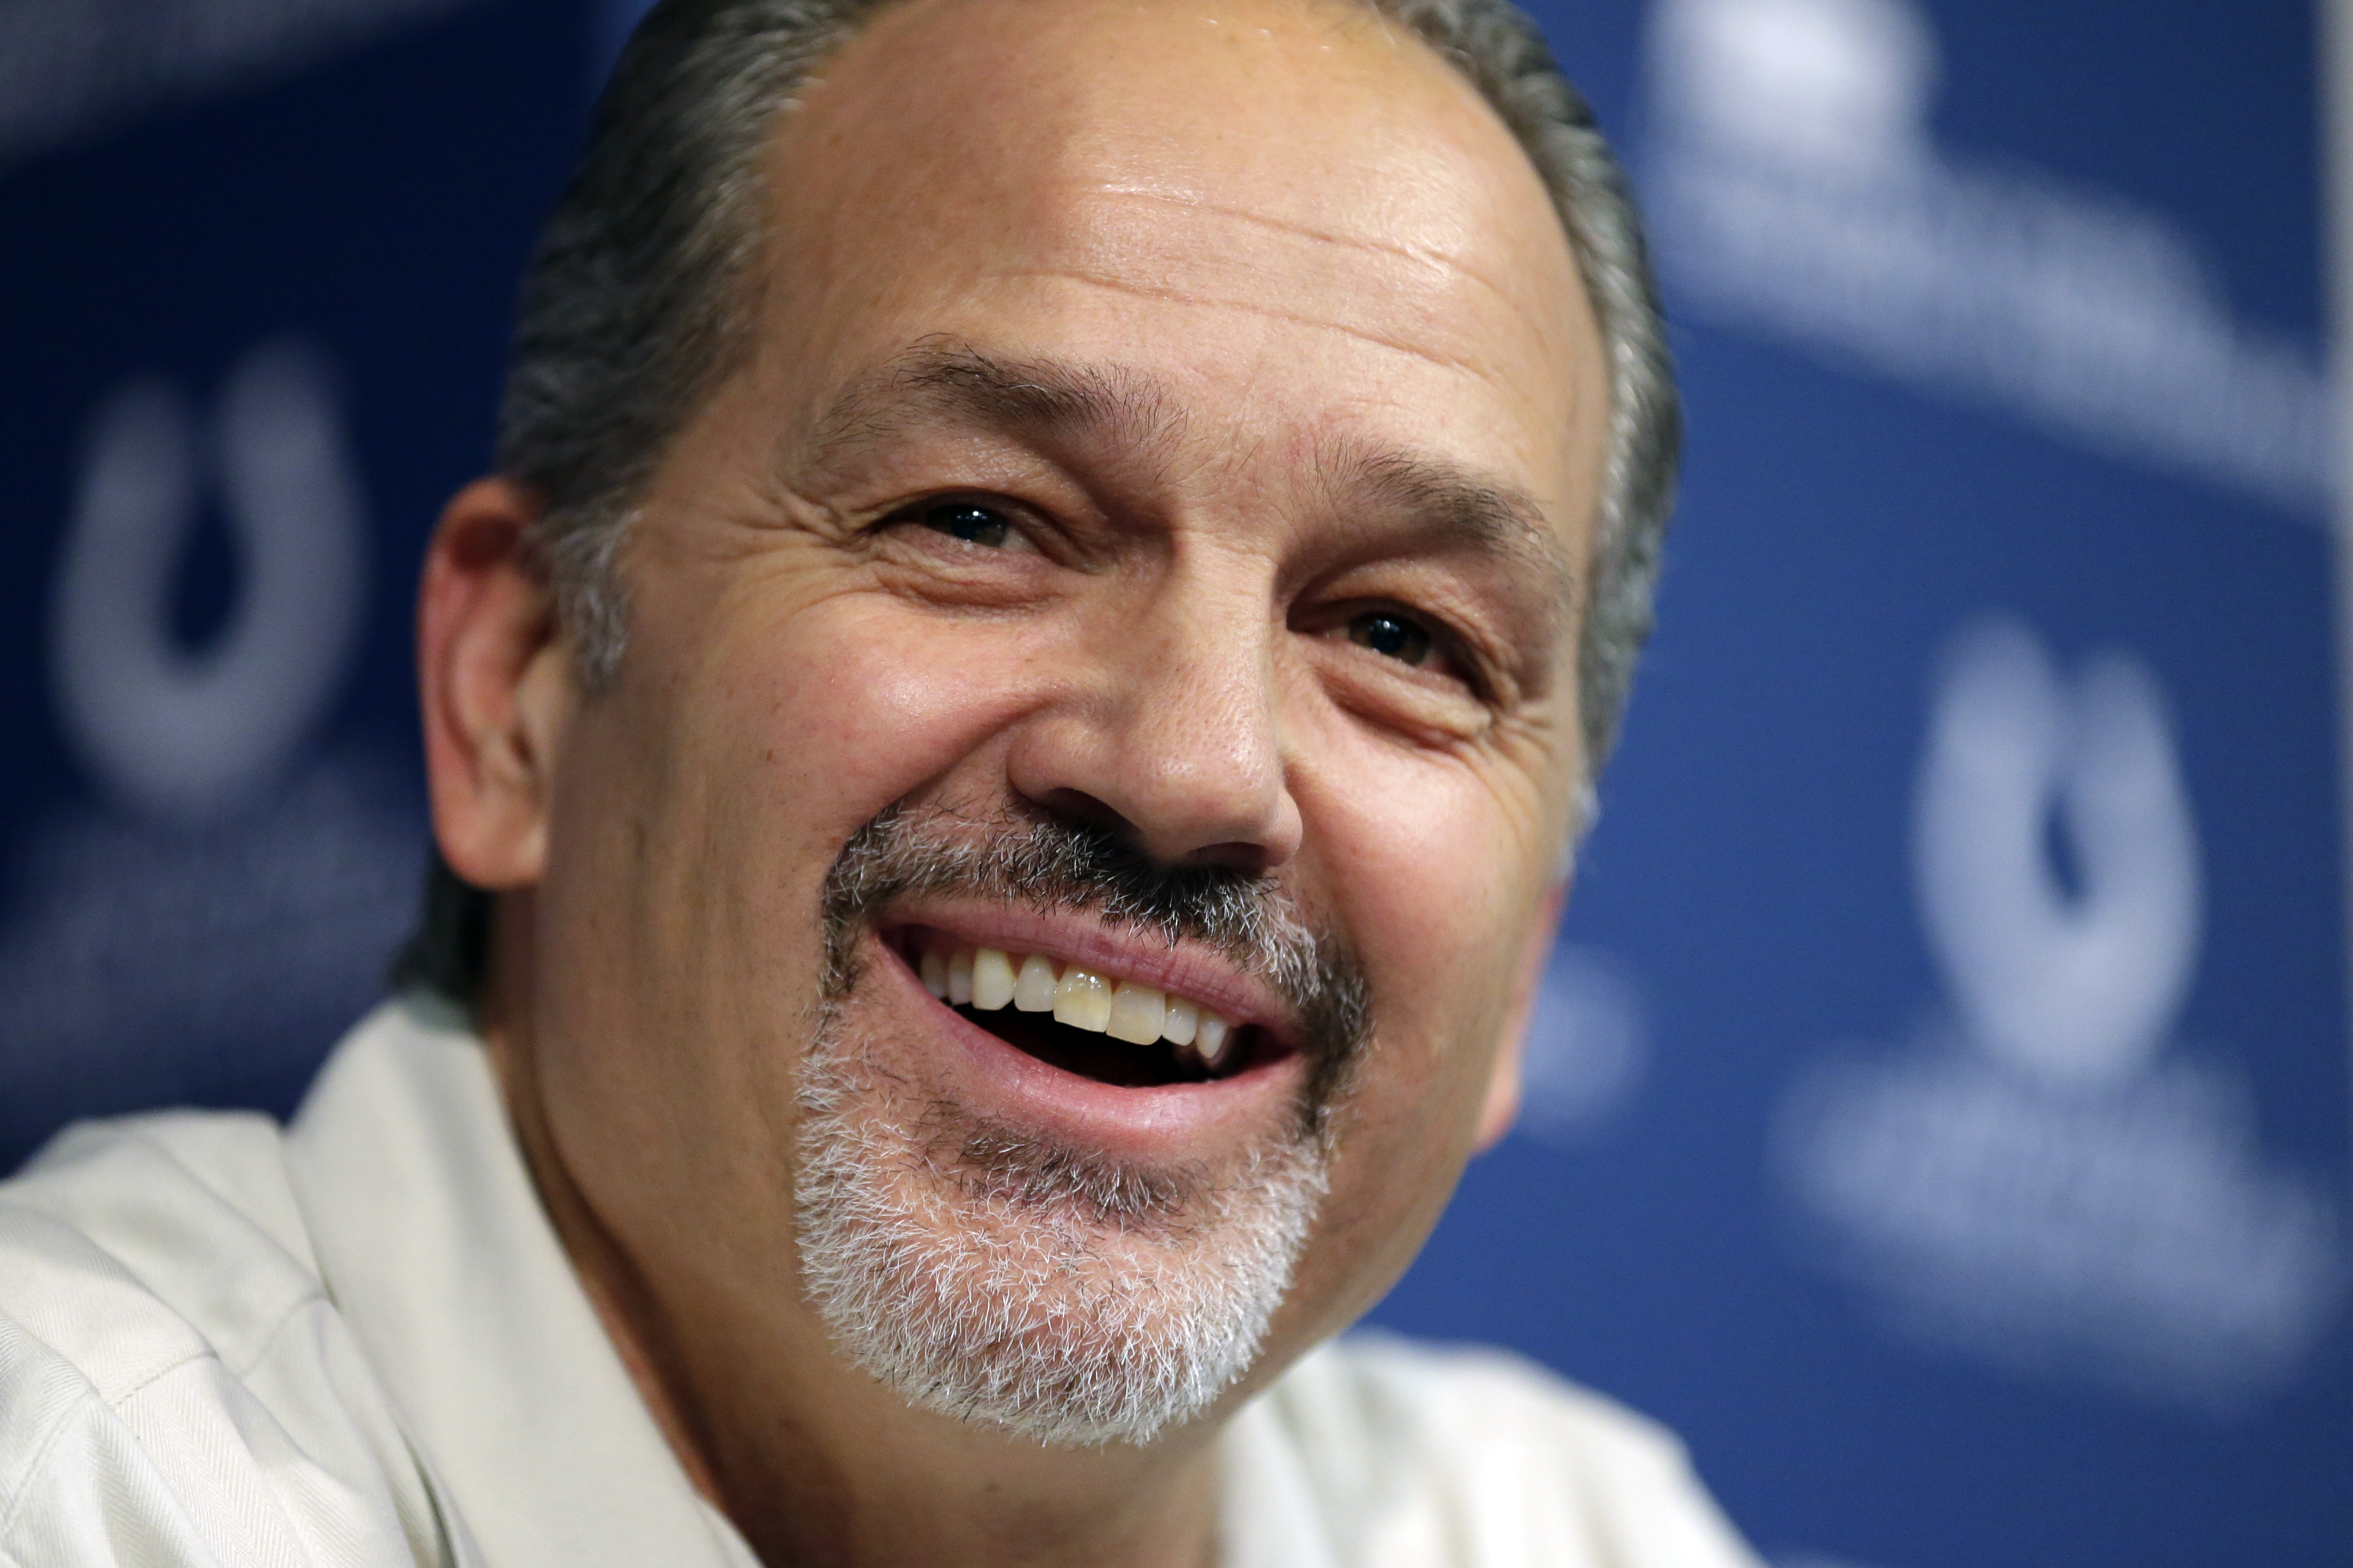 Indianapolis Colts head coach Chuck Pagano speaks after the announcement of his contract extension during a press conference at the NFL team's practice facility in Indianapolis, Monday, Jan. 4, 2016. (AP Photo/Michael Conroy)